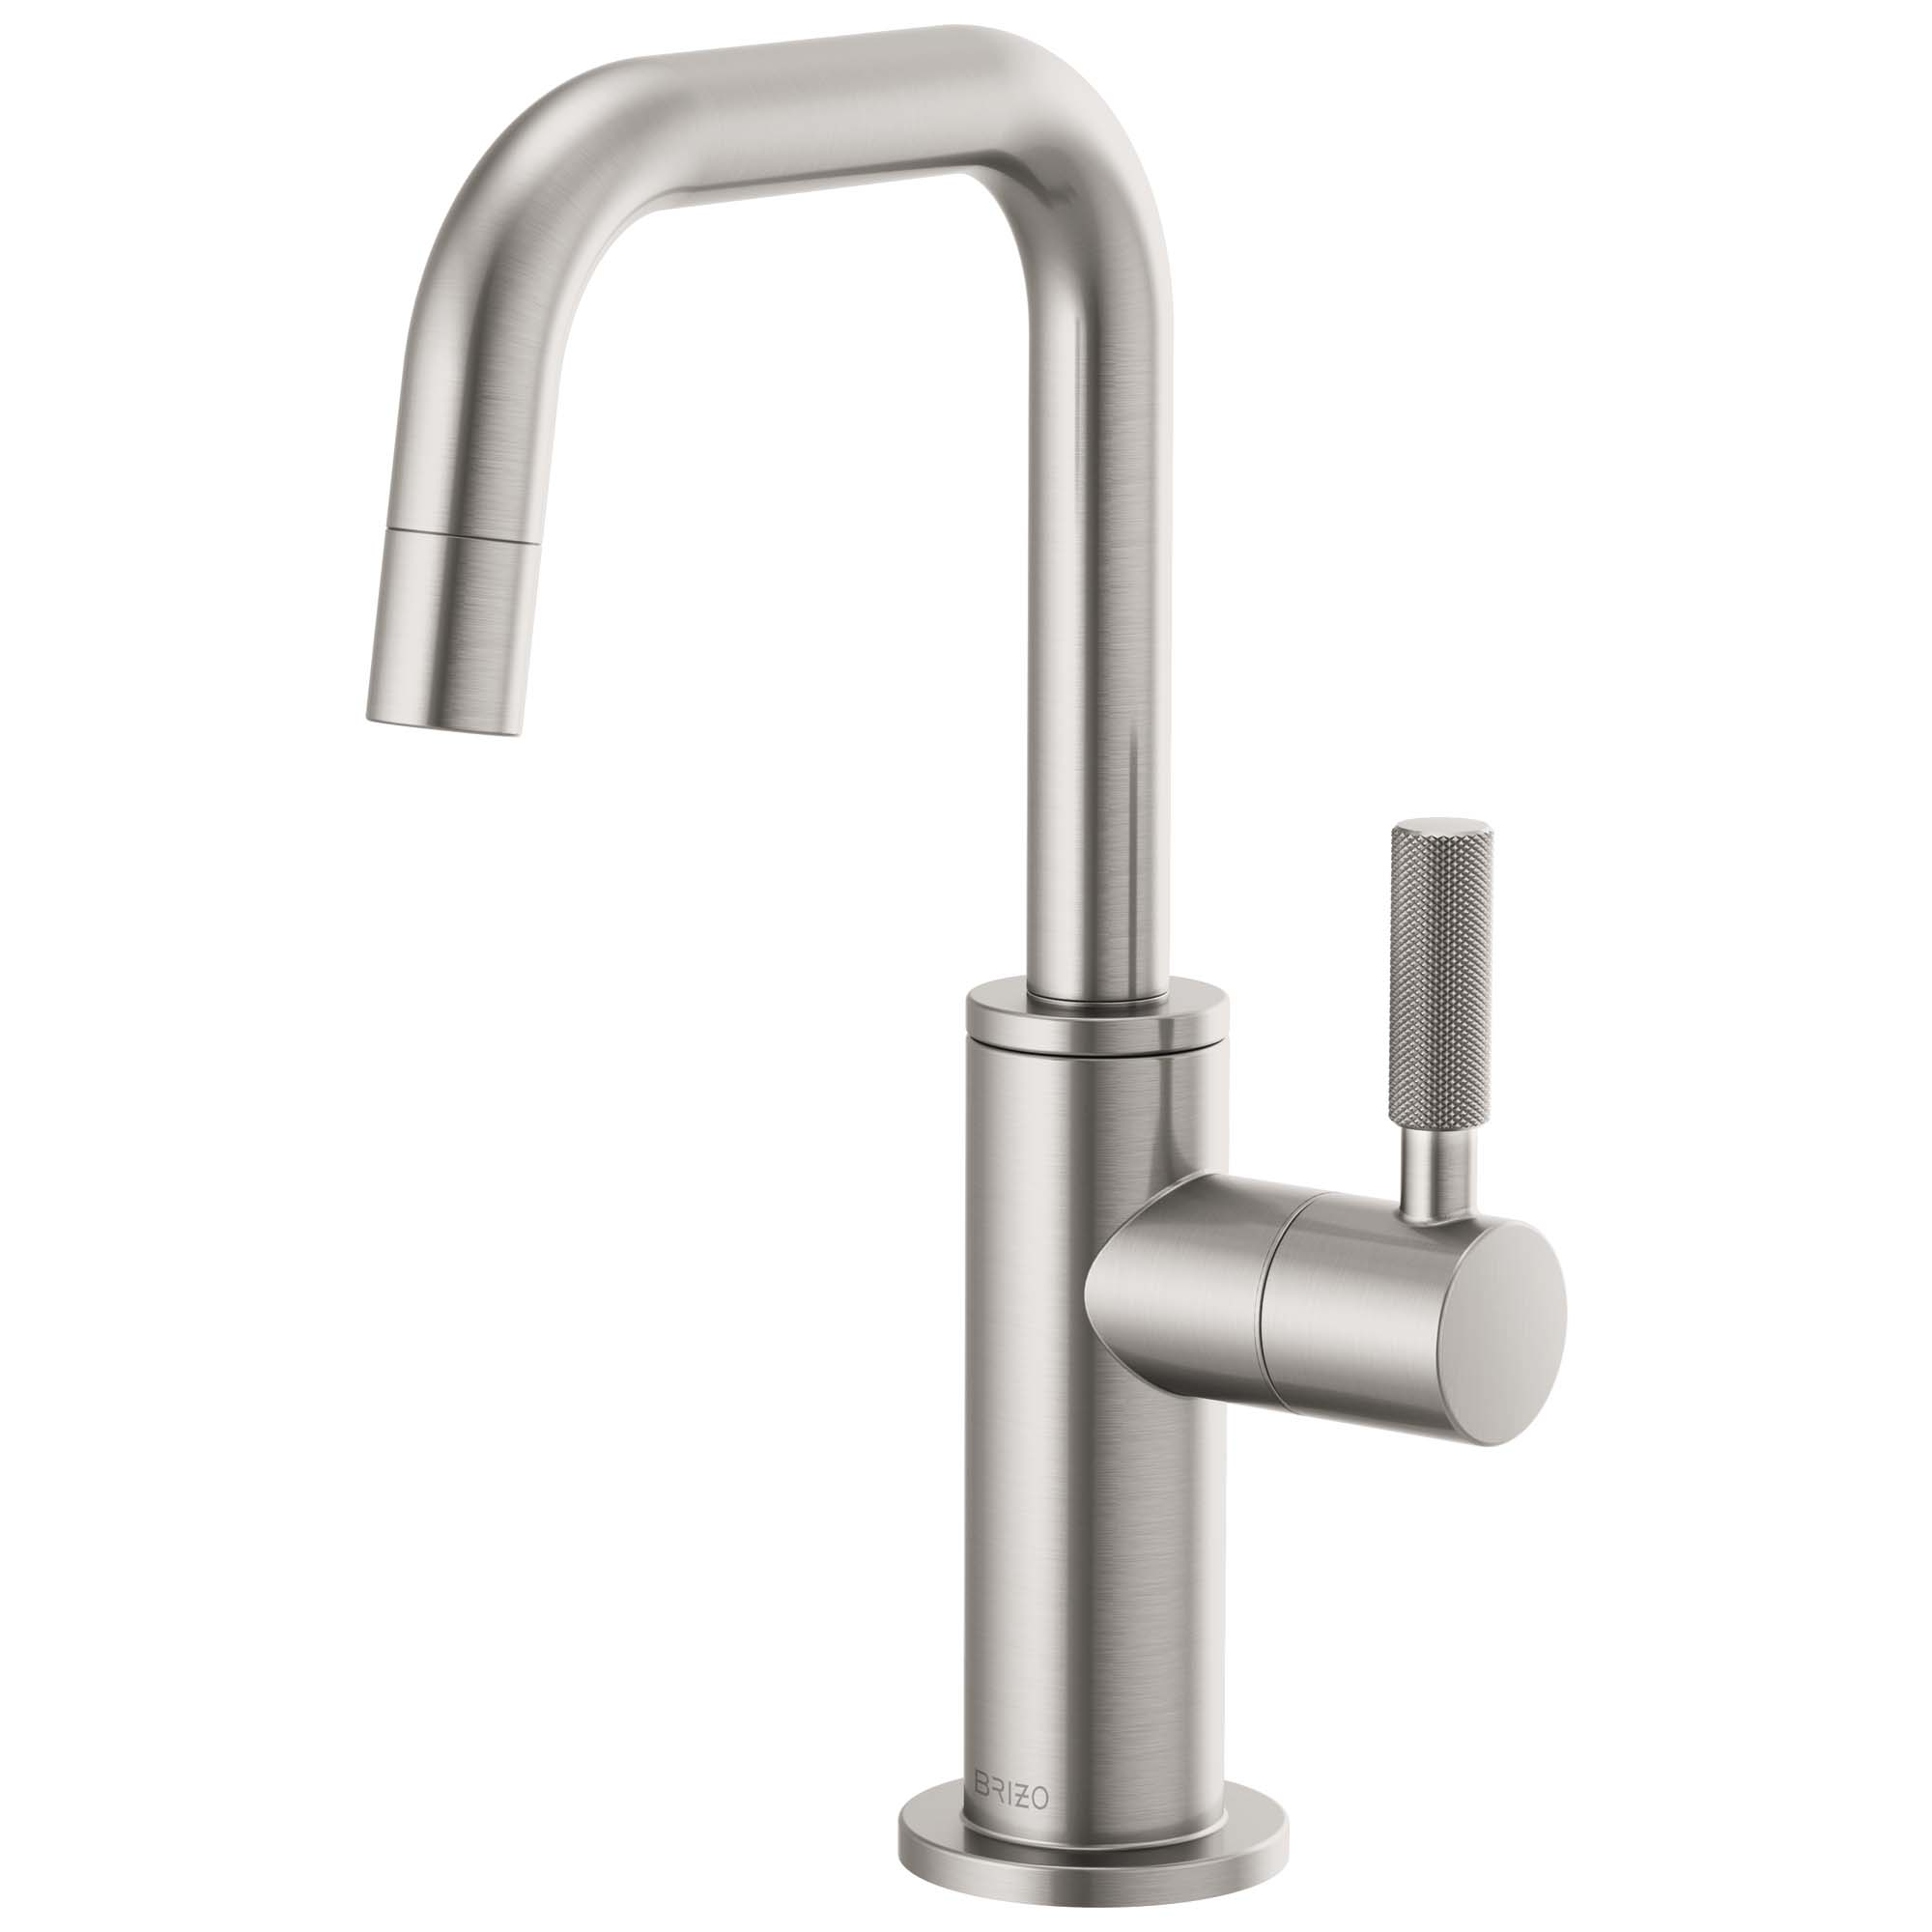 Brizo 61353LF-C-SS Litze Beverage Faucet with Square Spout and Knurled Handle - Stainless